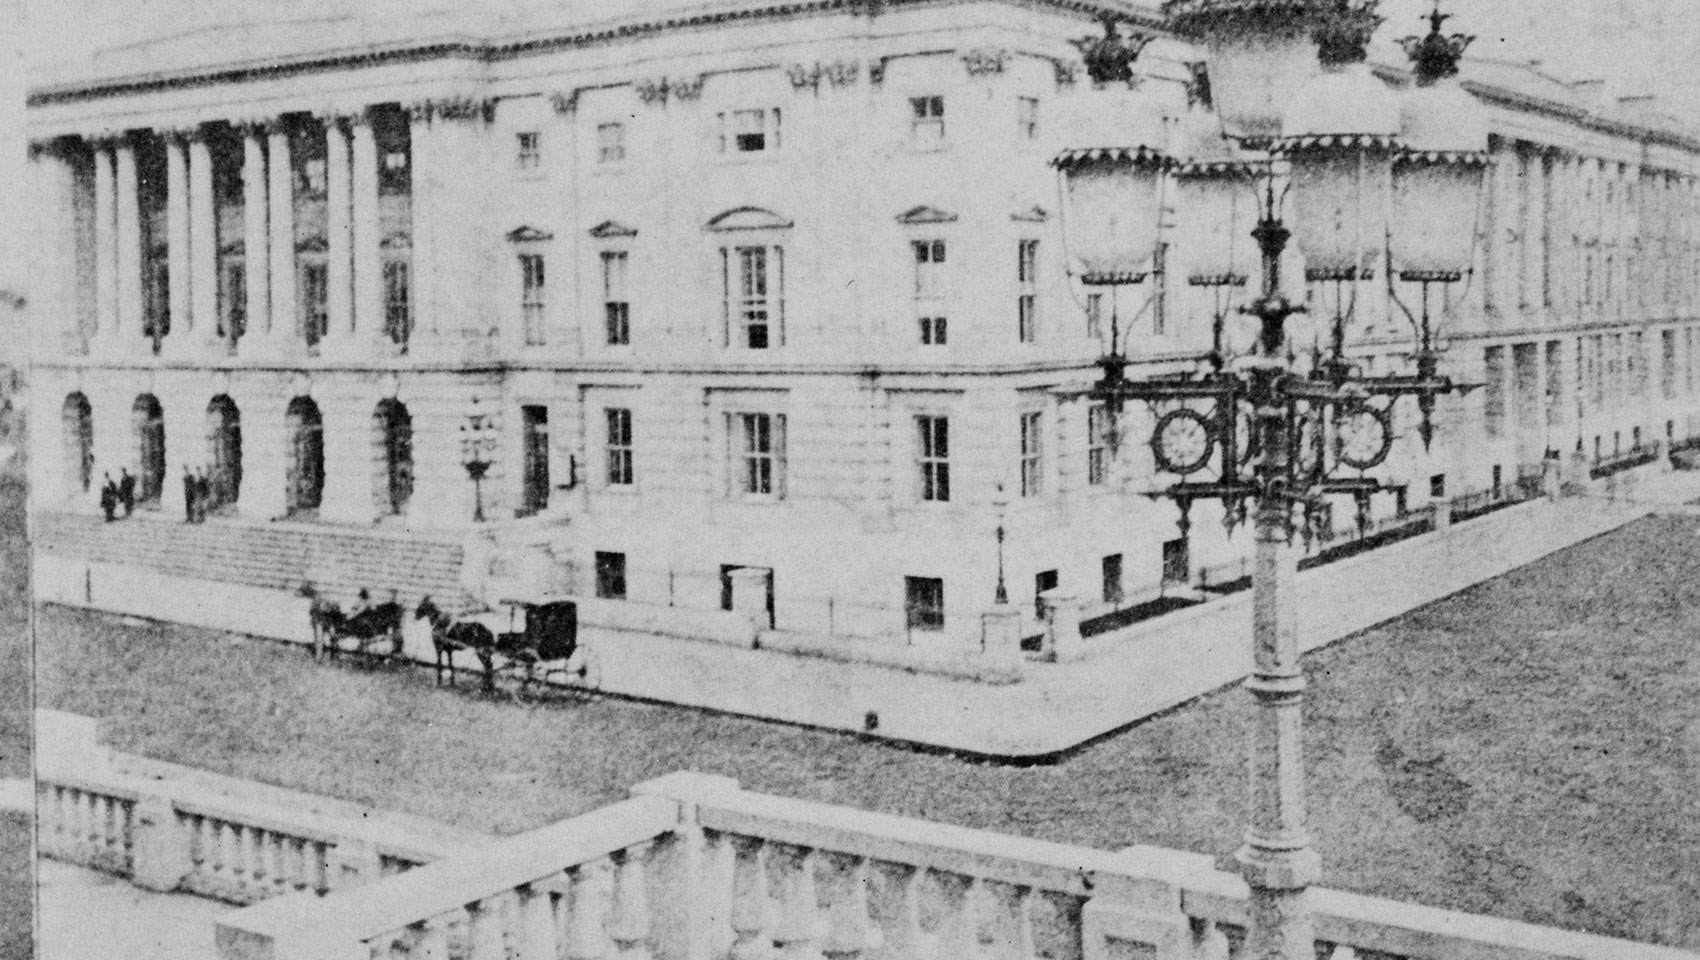 1873 photograph of Washington DC's General Post Office